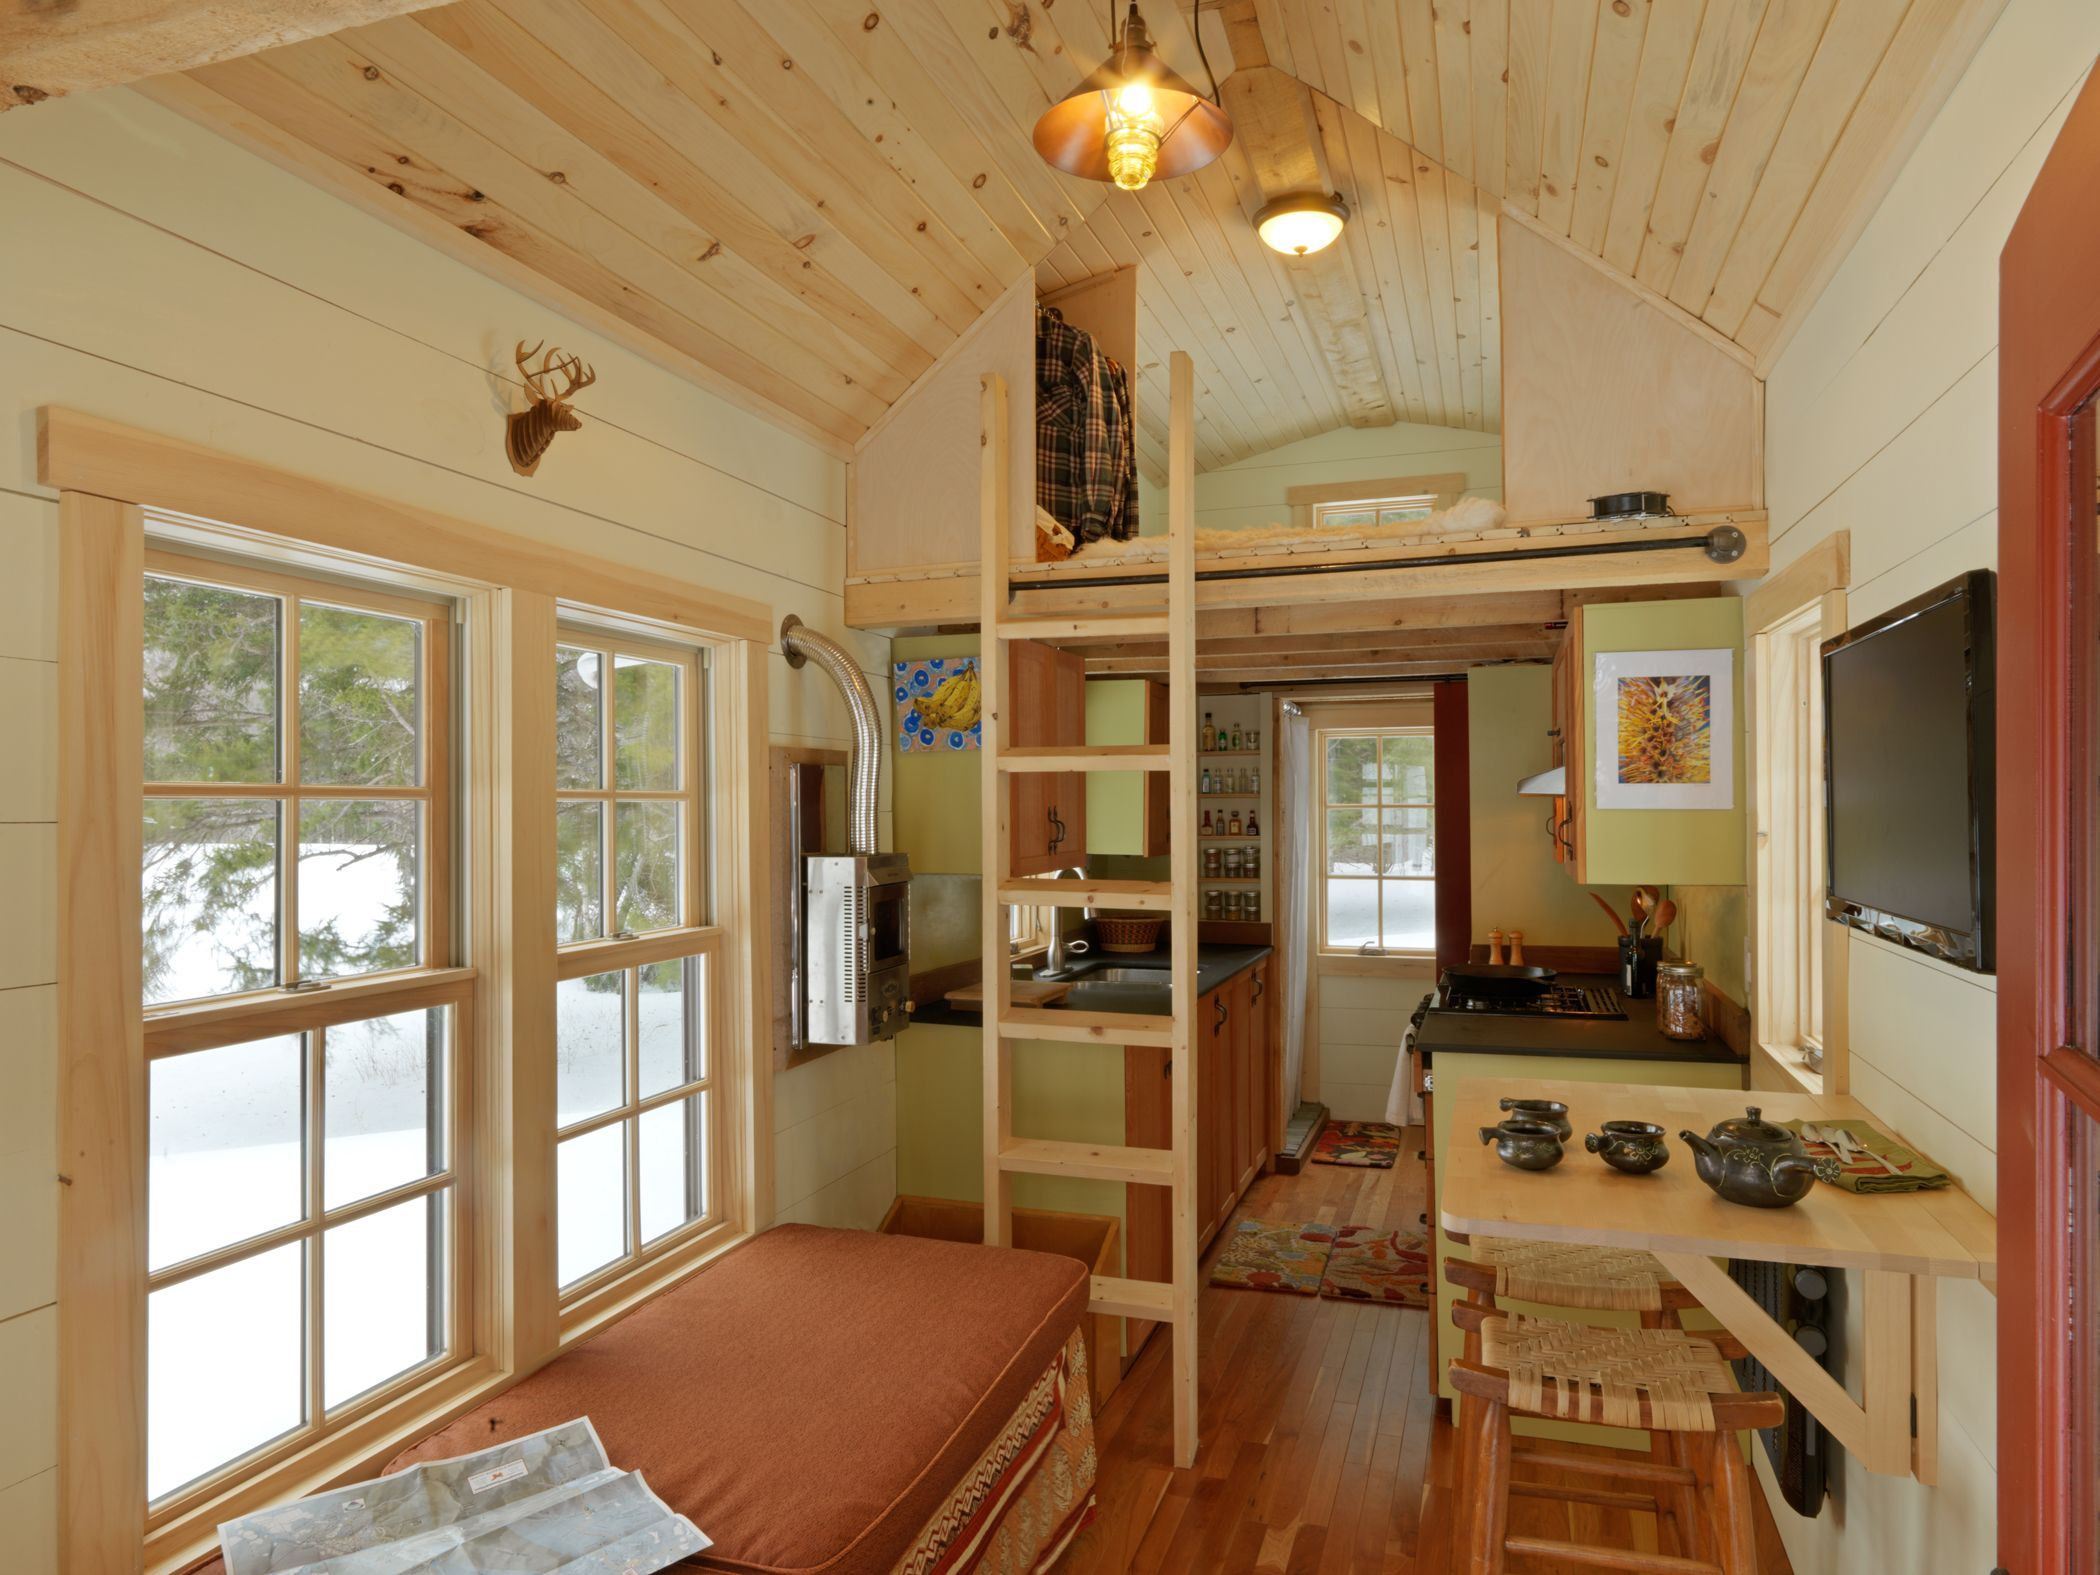 Ethan Waldman 39 S Tiny House Includes Everything He Needs In